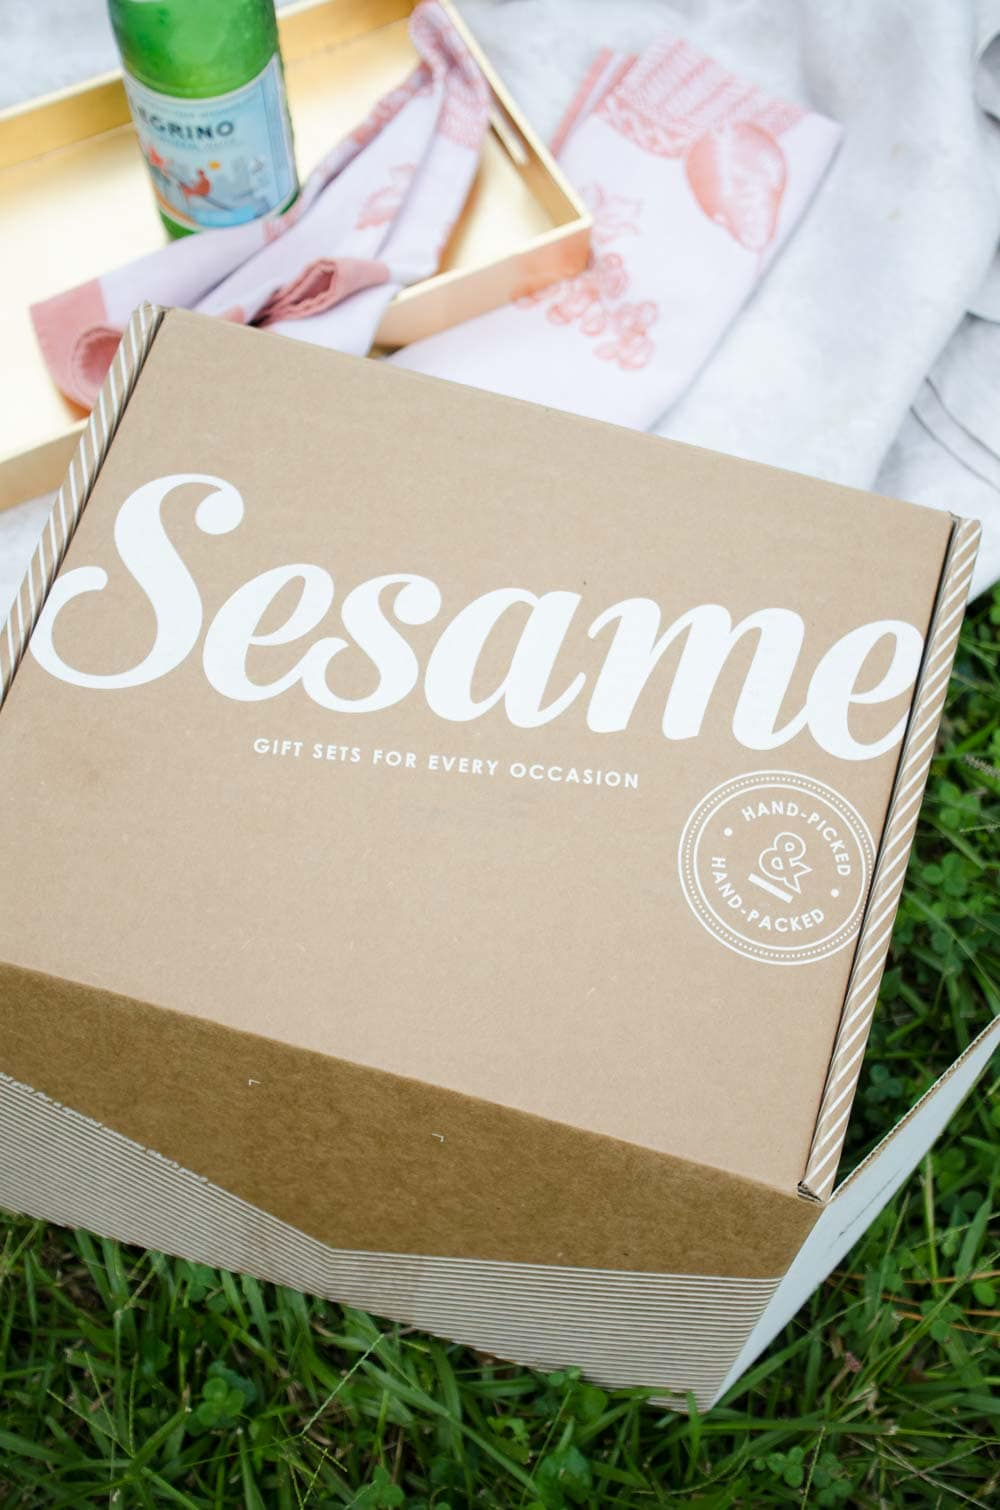 Easy and elegant gift boxes for any occasion from Sesame gifts